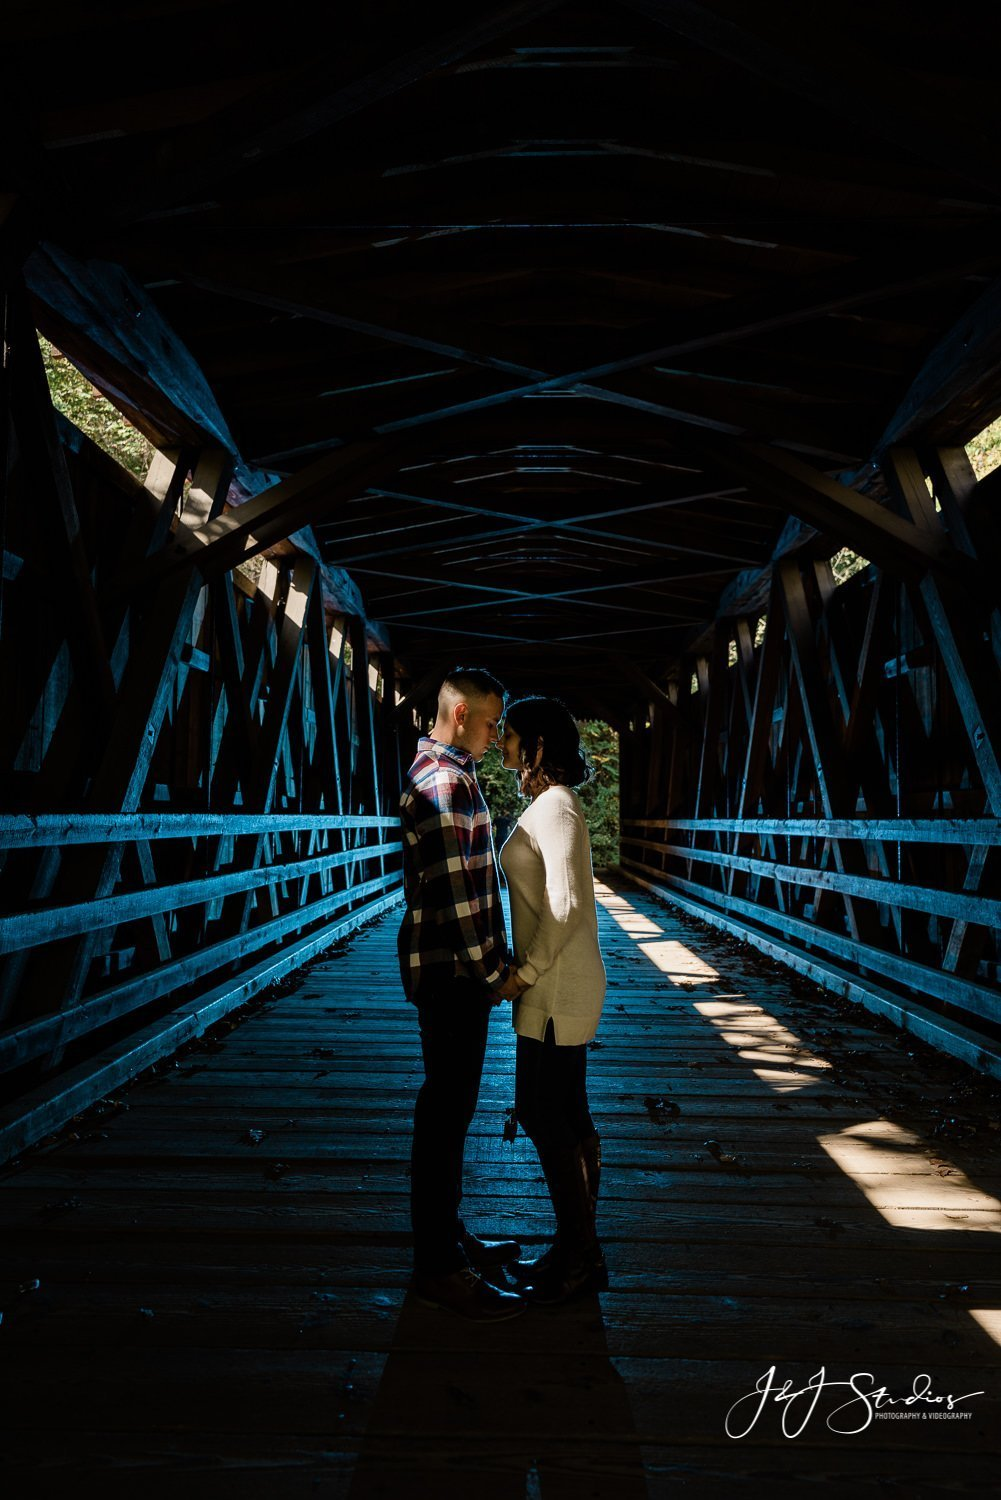 Thomas Mill Bridge silhouette engagement photo